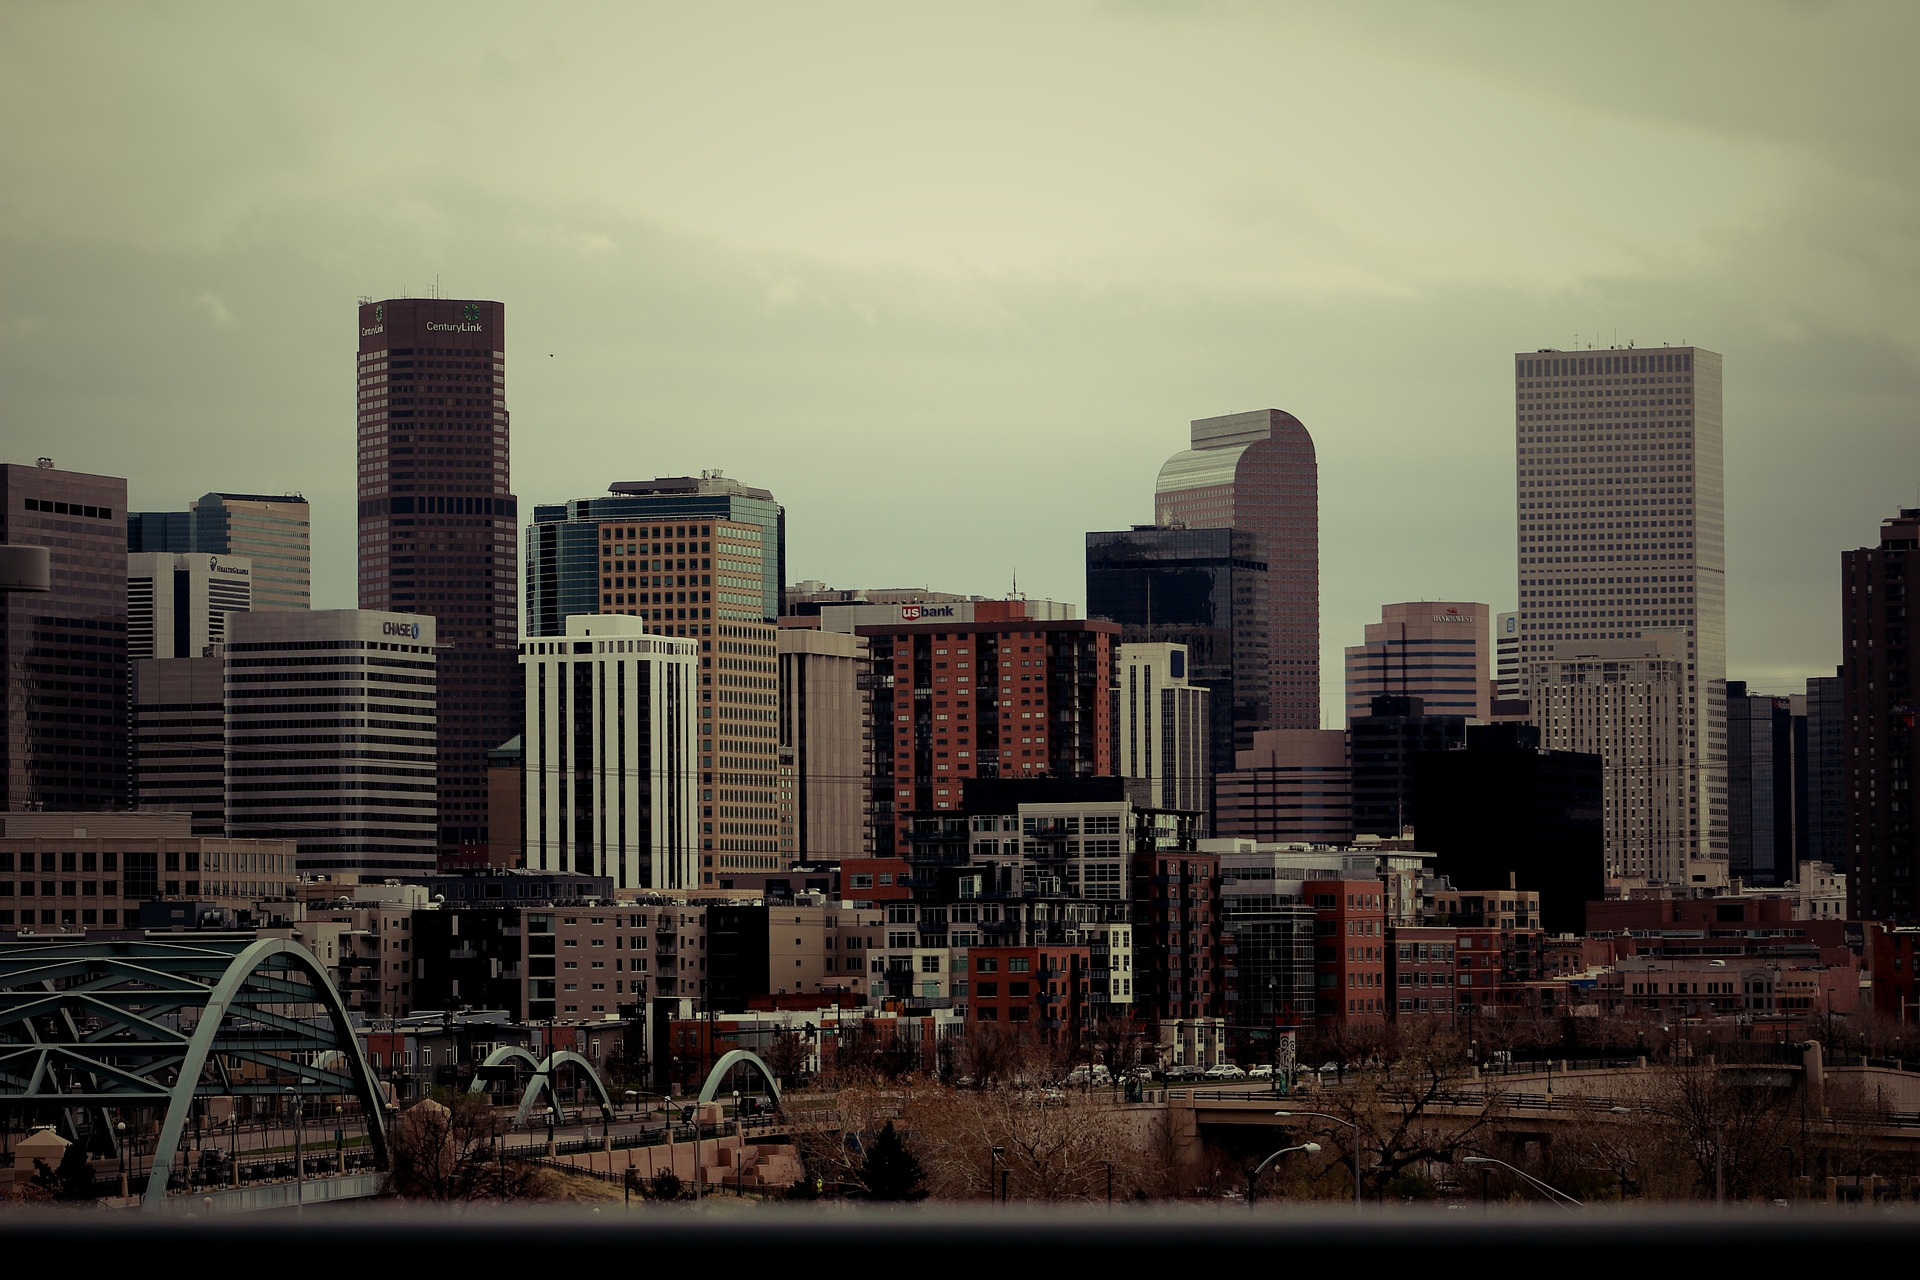 State of the City - denver, co